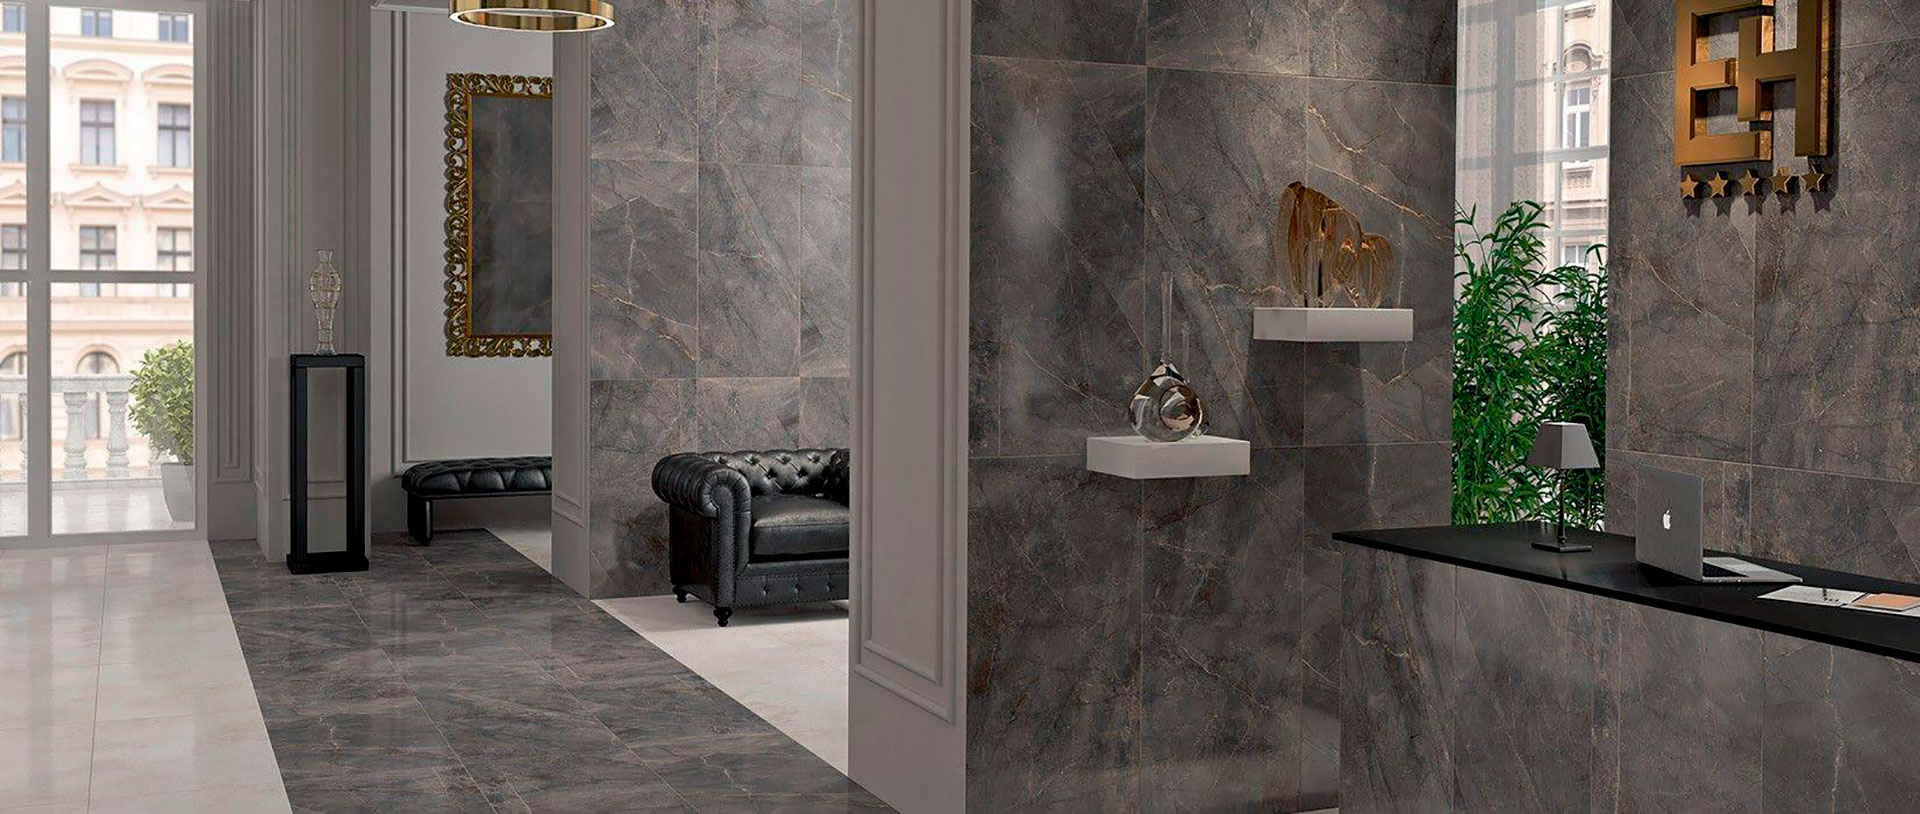 Marble FMG: the utmost technical and aesthetic quality in porcelain